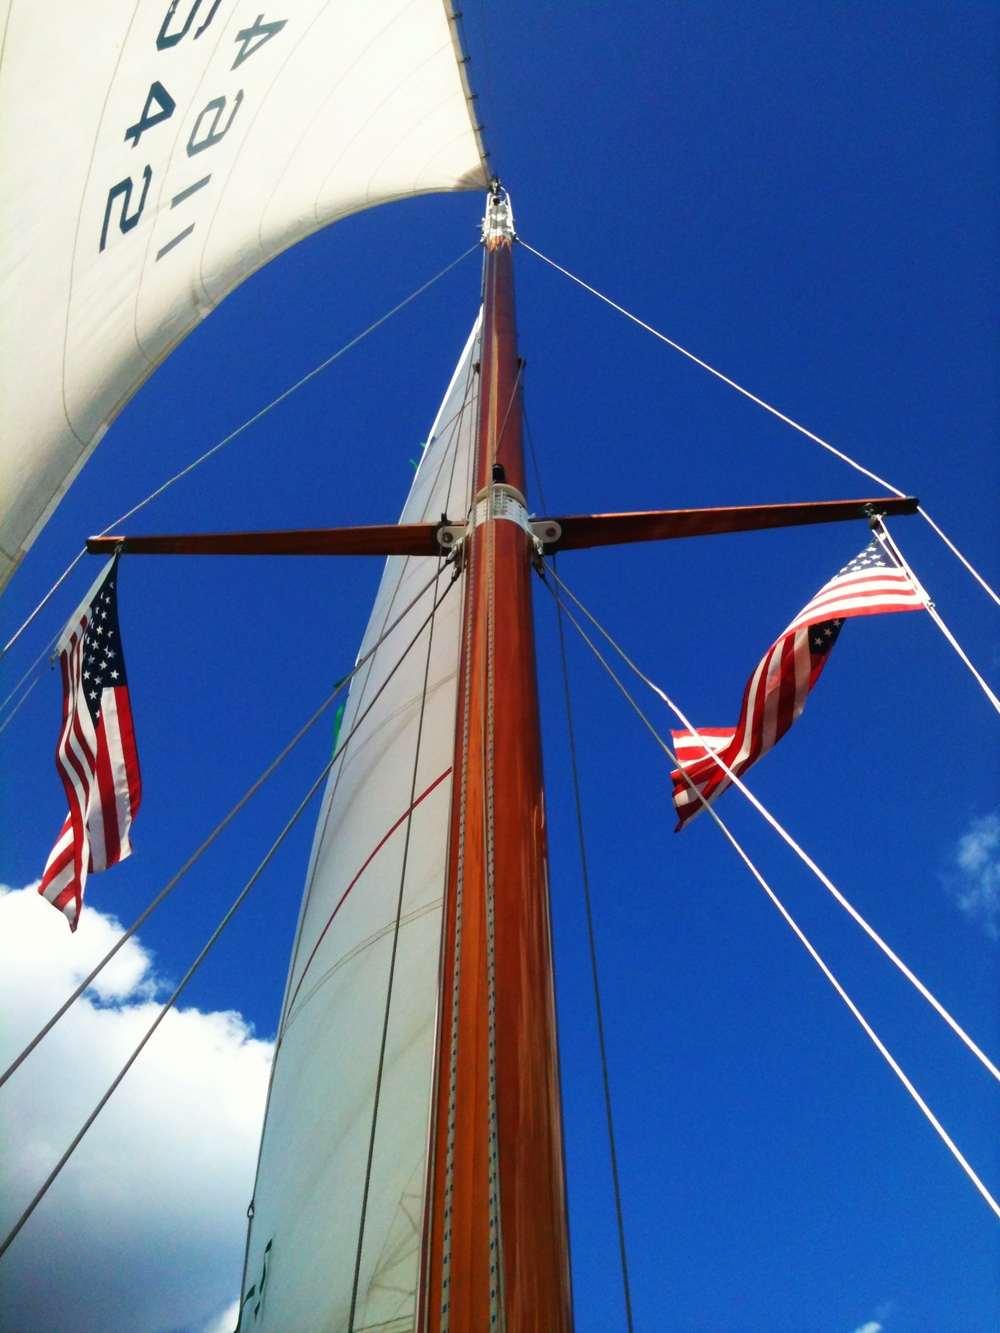 Ventura's beautiful mast glistening against the blue sky.